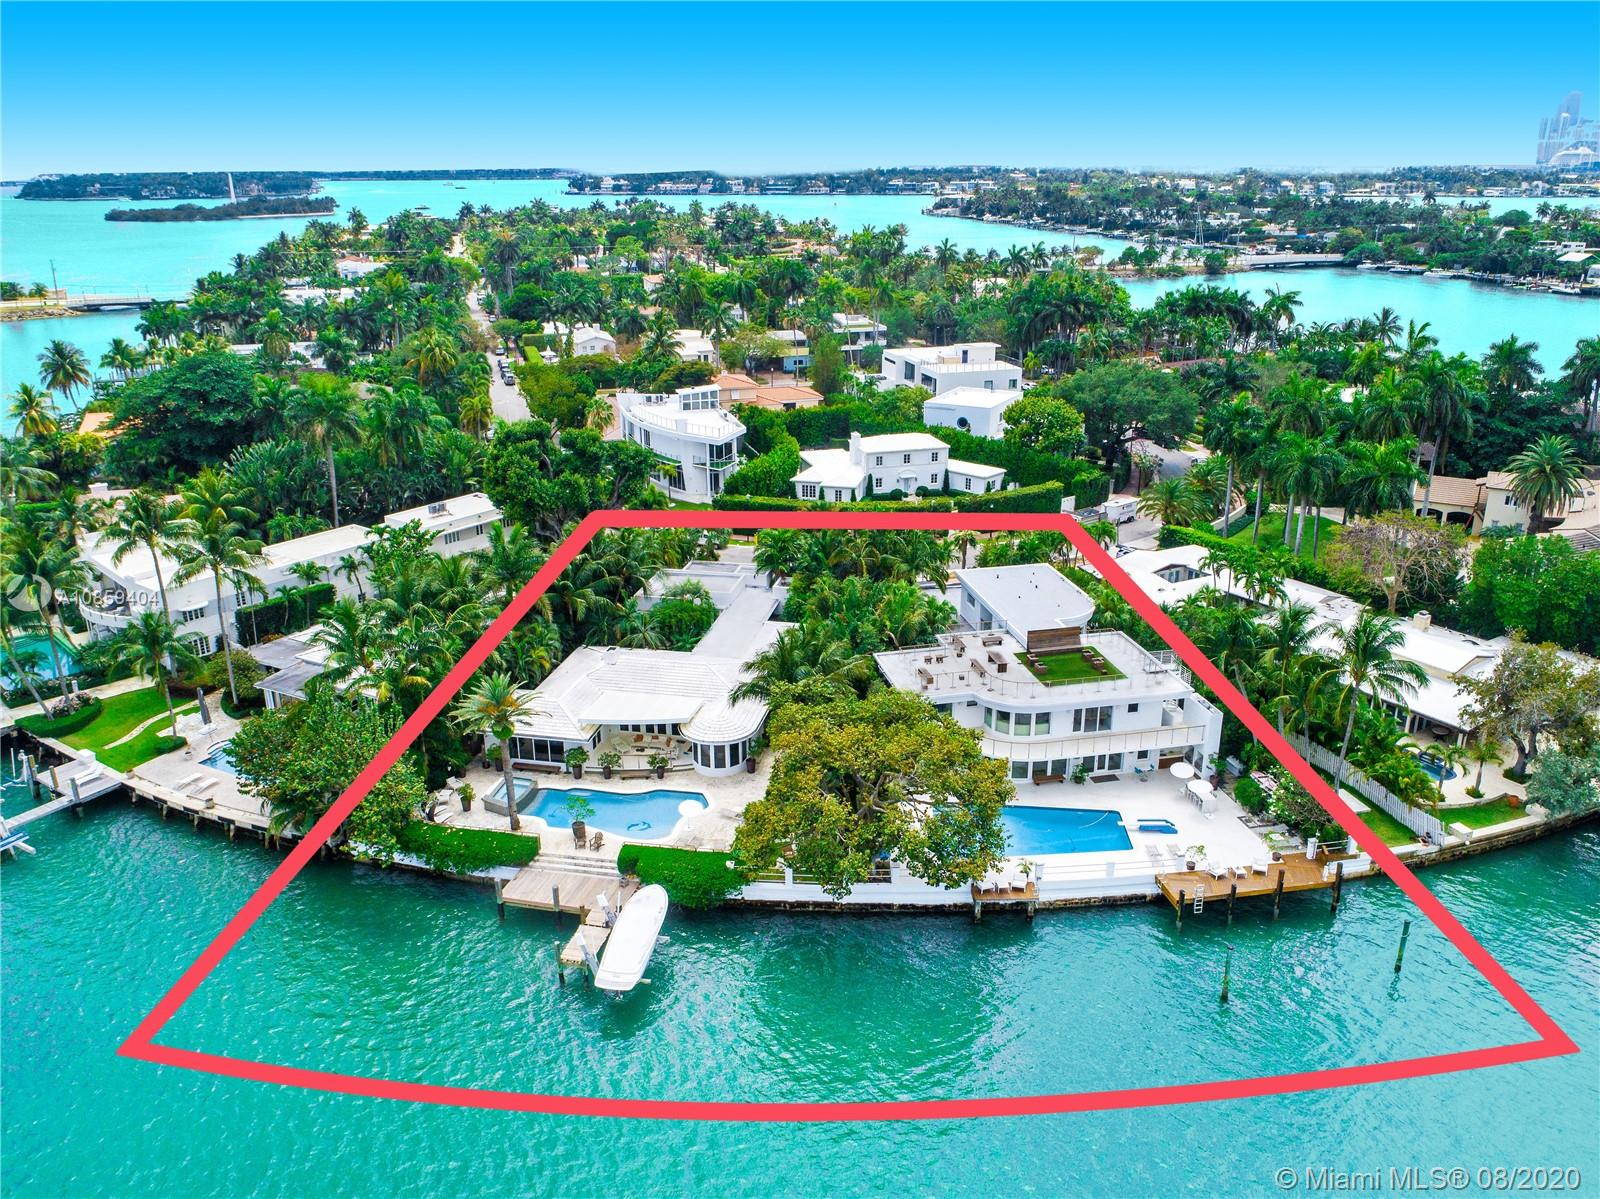 MiMo STYLE TROPHY COMPOUND WITH 210 FT OF OPEN BAY WATERFRONT PERCHED ON THE TIP OF RIVO ALTO ISLAND'S DOUBLE POINT LOT & LINED WITH A CURATED EXOTIC BOTANICAL GARDEN! Pristine Compound Inspired by MiMo Design w/ 10,041 SF of Living Space & 28,376 SF Lot. Main Residences + Separate Guest Houses Including a Total of 9 Bedrooms+10 Baths+2 Half Baths. Stunning Pool & Deck Area Hugged by Palm Trees. Terrazzo Flooring & Fresh White-Washed Brick Walls + Built-in Bookcases. Kitchens Equipped w/ Wolf & Miele Appliances + Subzero Refrigerators. Villas Adorned w/ Statuario Marble + Shimmering Mosaic t/o. Baths Covered in White Subway Tile w/ Marble Tub. Each Bathroom Carries its Own Unique Style w/ Various Mosaic Textured Walls. Ipe Dock & Outdoor Kitchen w/ DCS & Viking Grills. Expansive Rooftop.